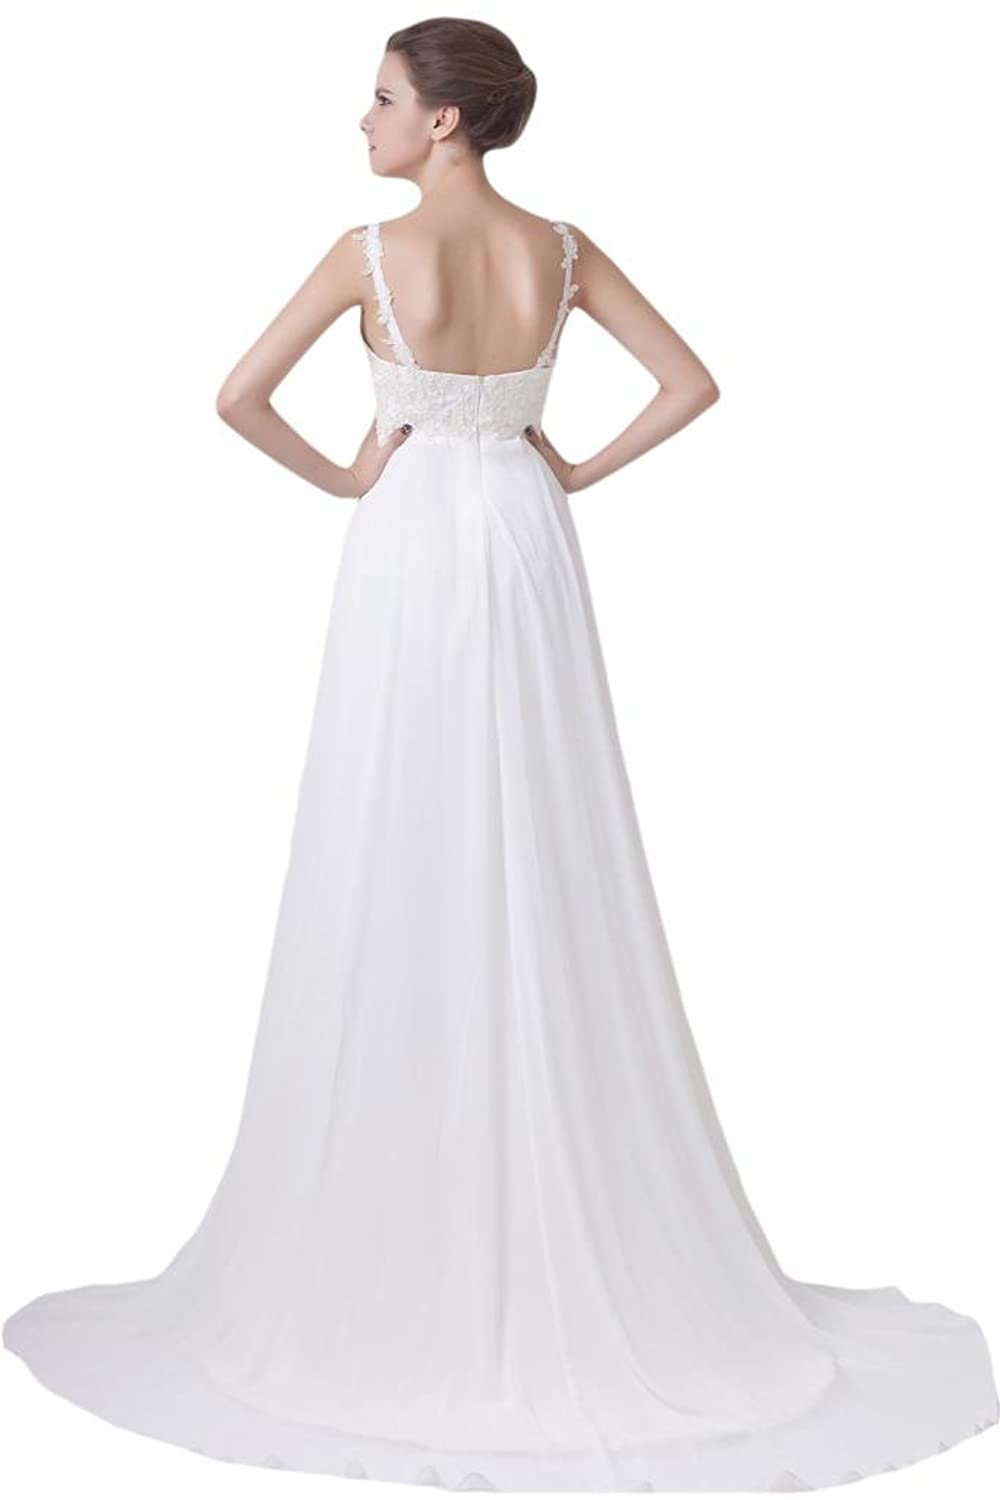 Sunvary 2014 New Beach Garden Wedding Dresses Spaghetti Chiffon A-line Evening Gowns